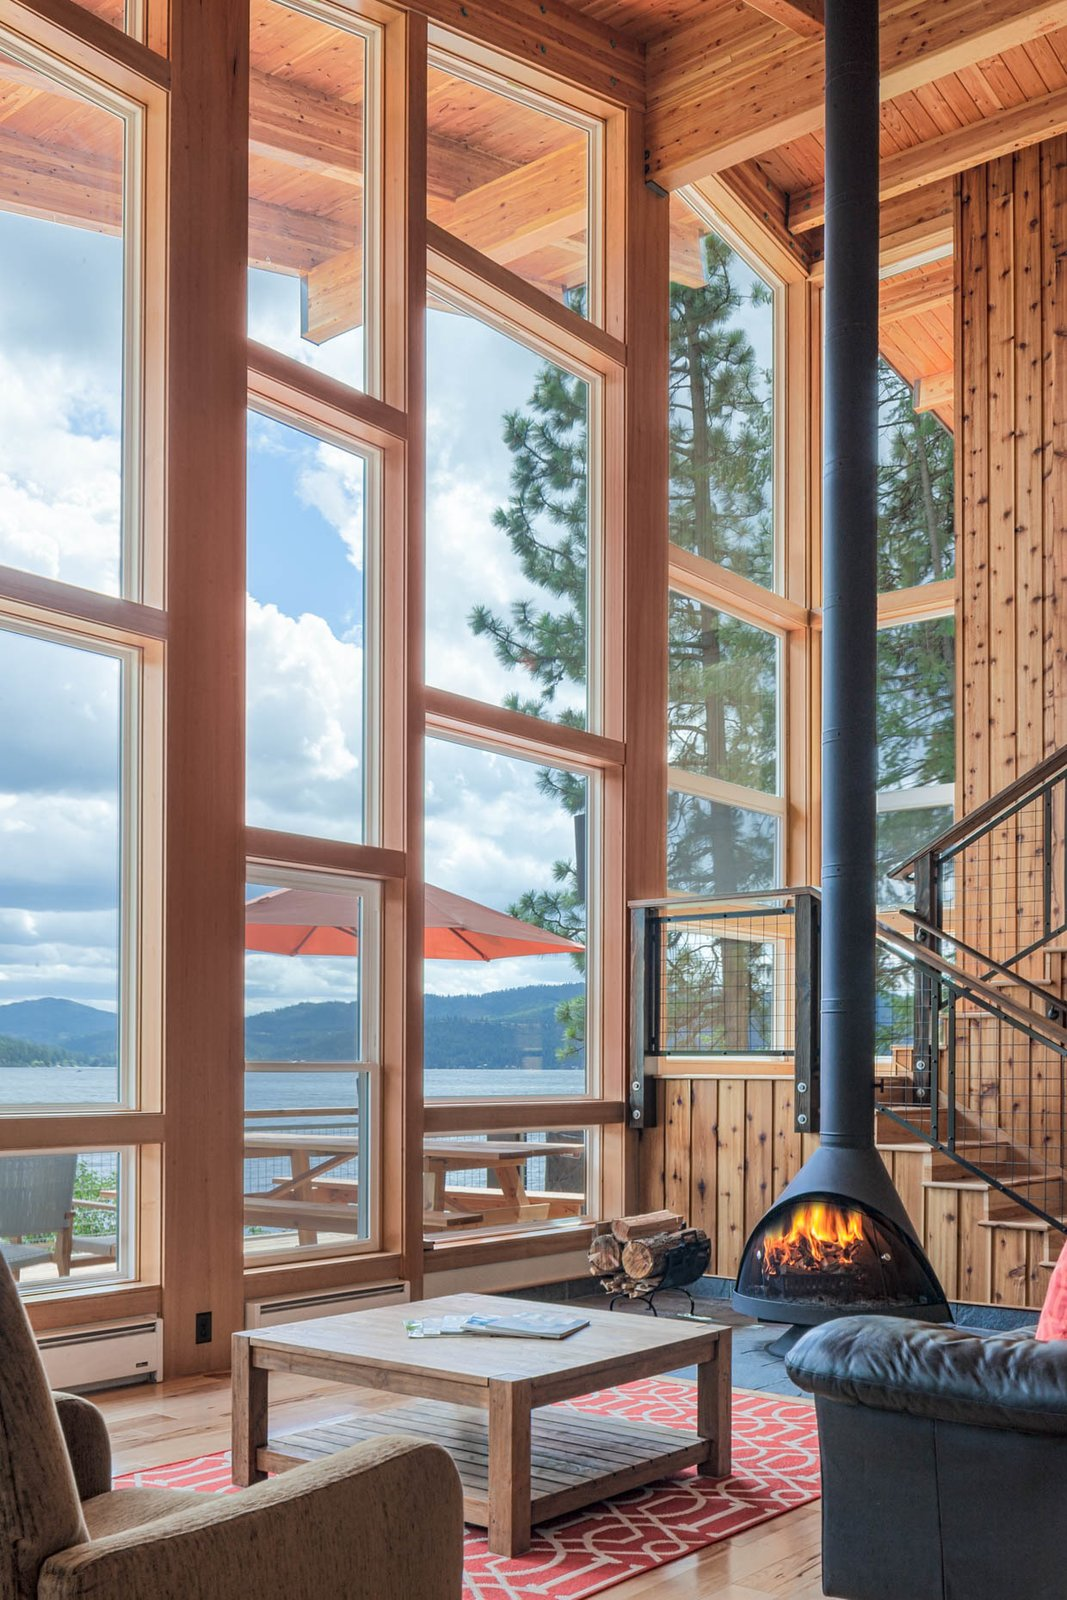 Light Hardwood, Wood Burning, Sofa, Coffee Tables, Chair, Windows, Wood, Metal, Sliding, and Picture  Best Windows Metal Light Hardwood Photos from Ferris Cabin